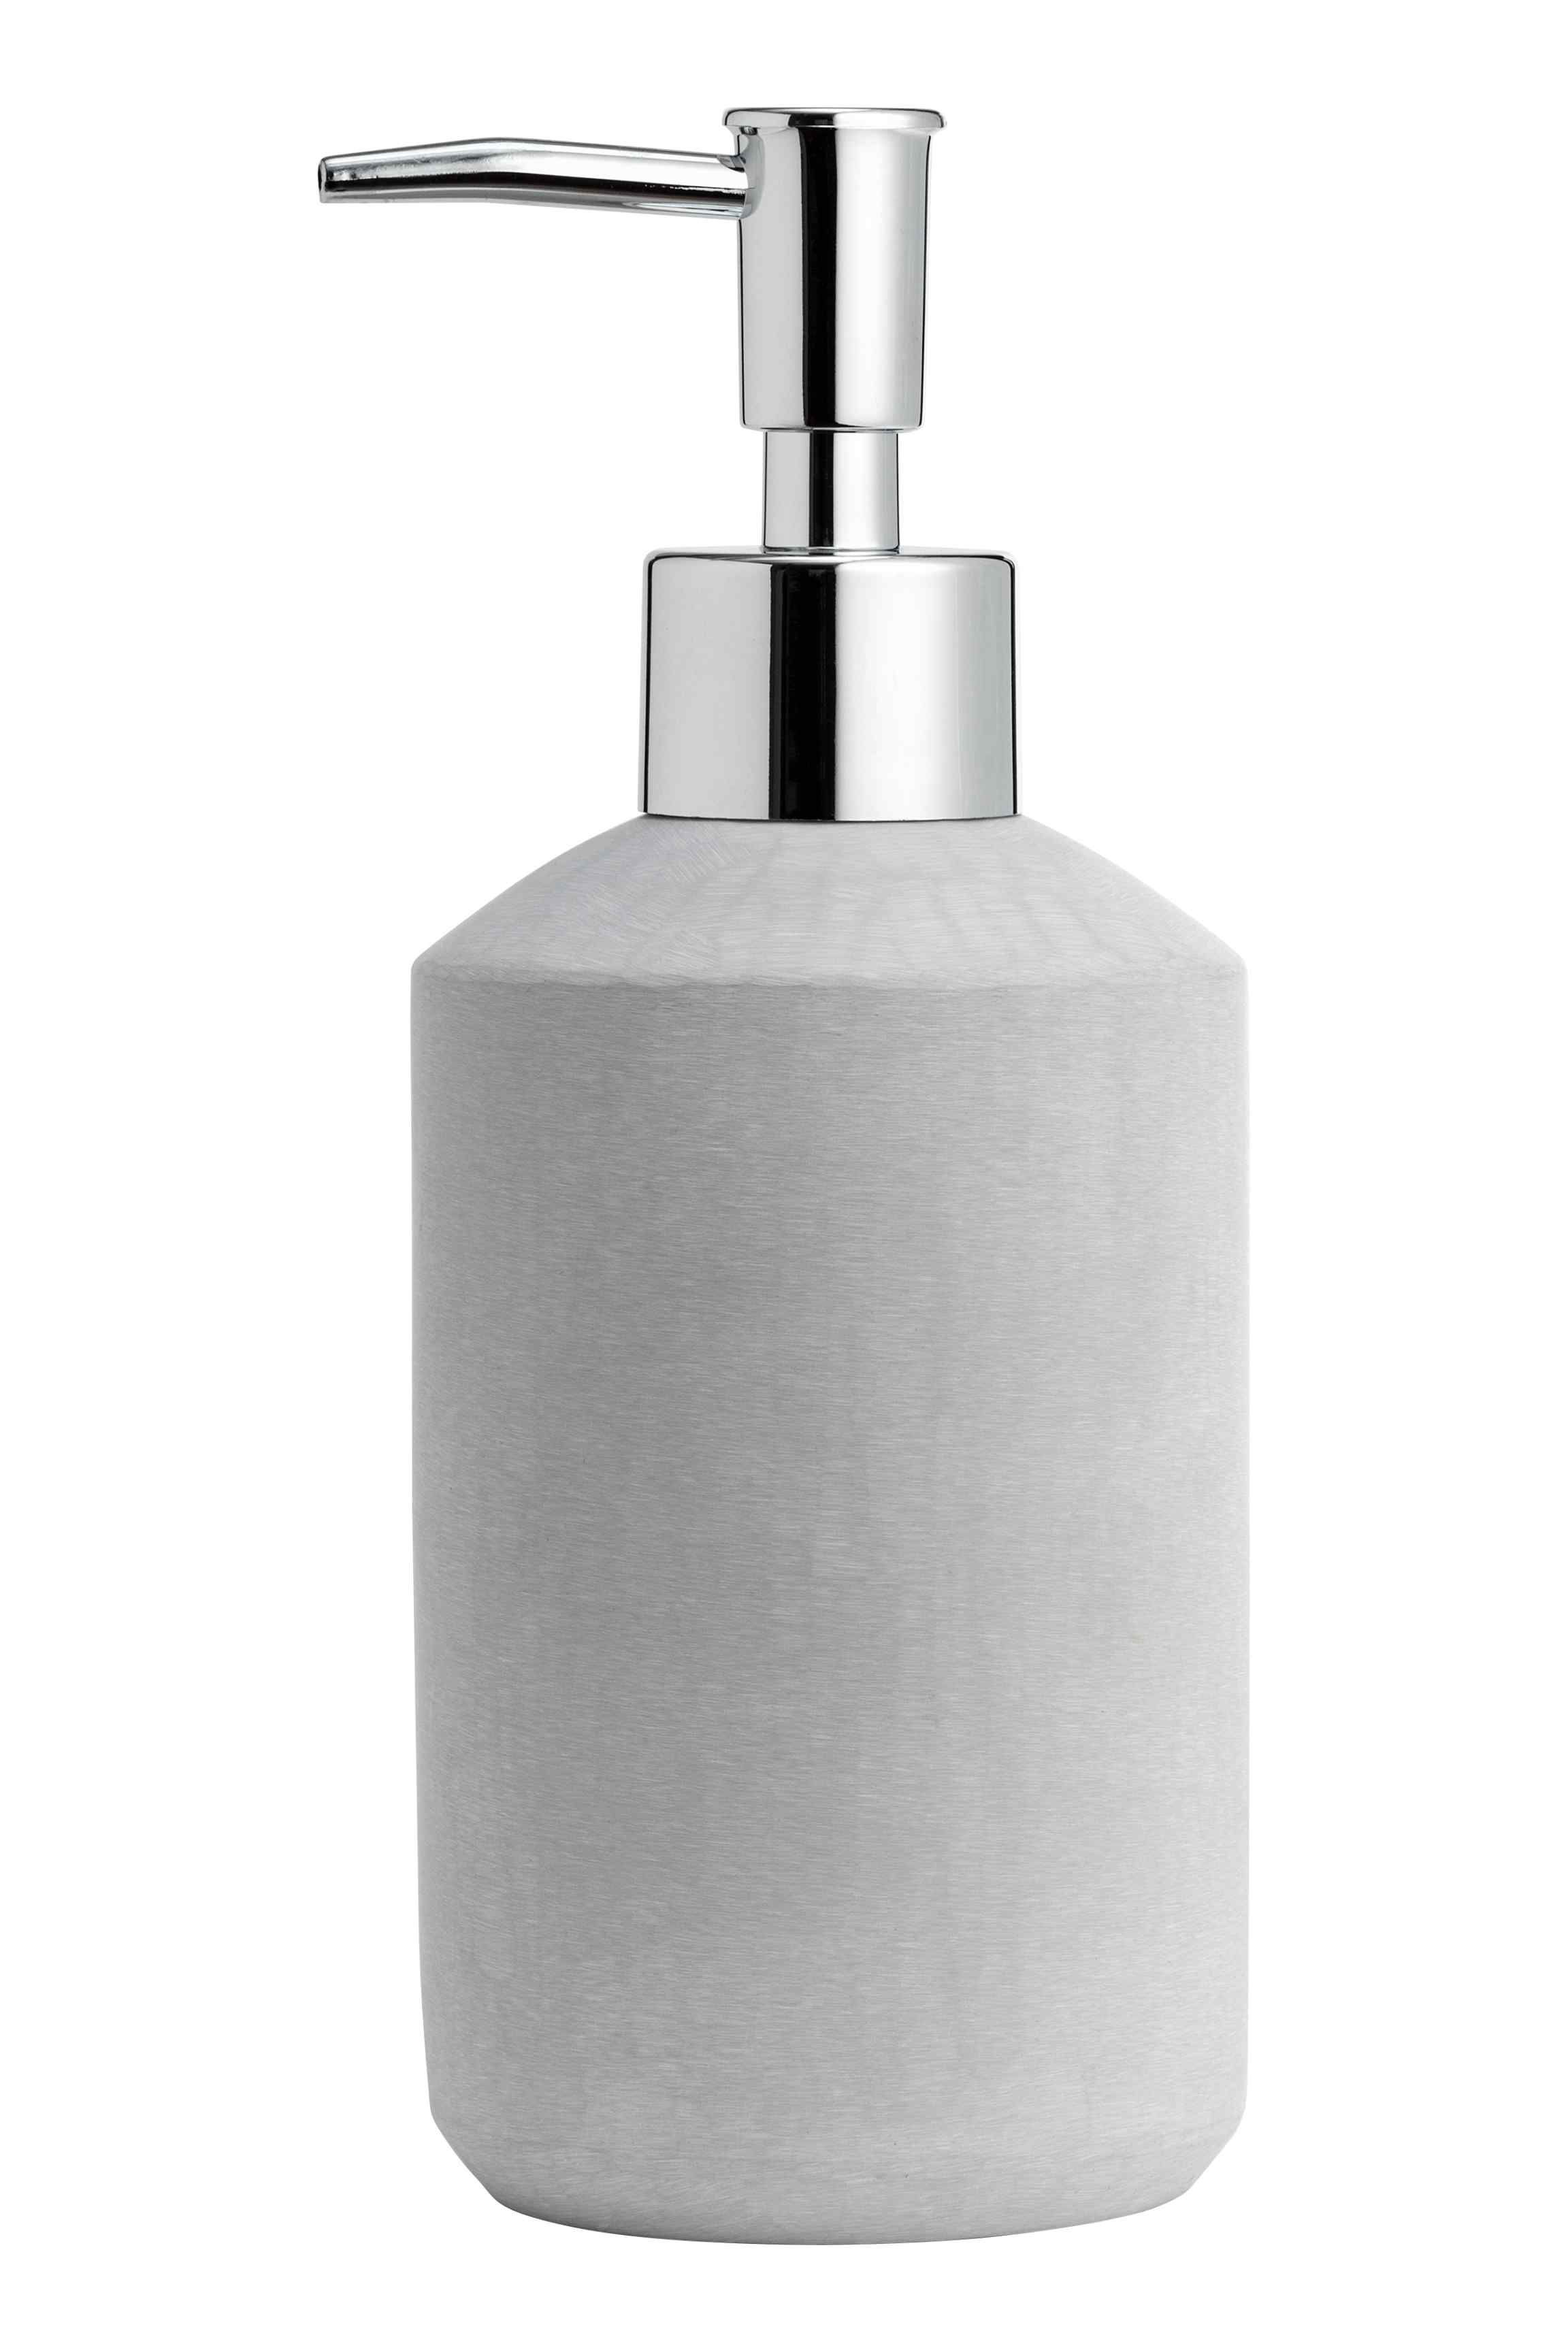 Imitation stone soap dispenser | Sinks, Lights and Bath